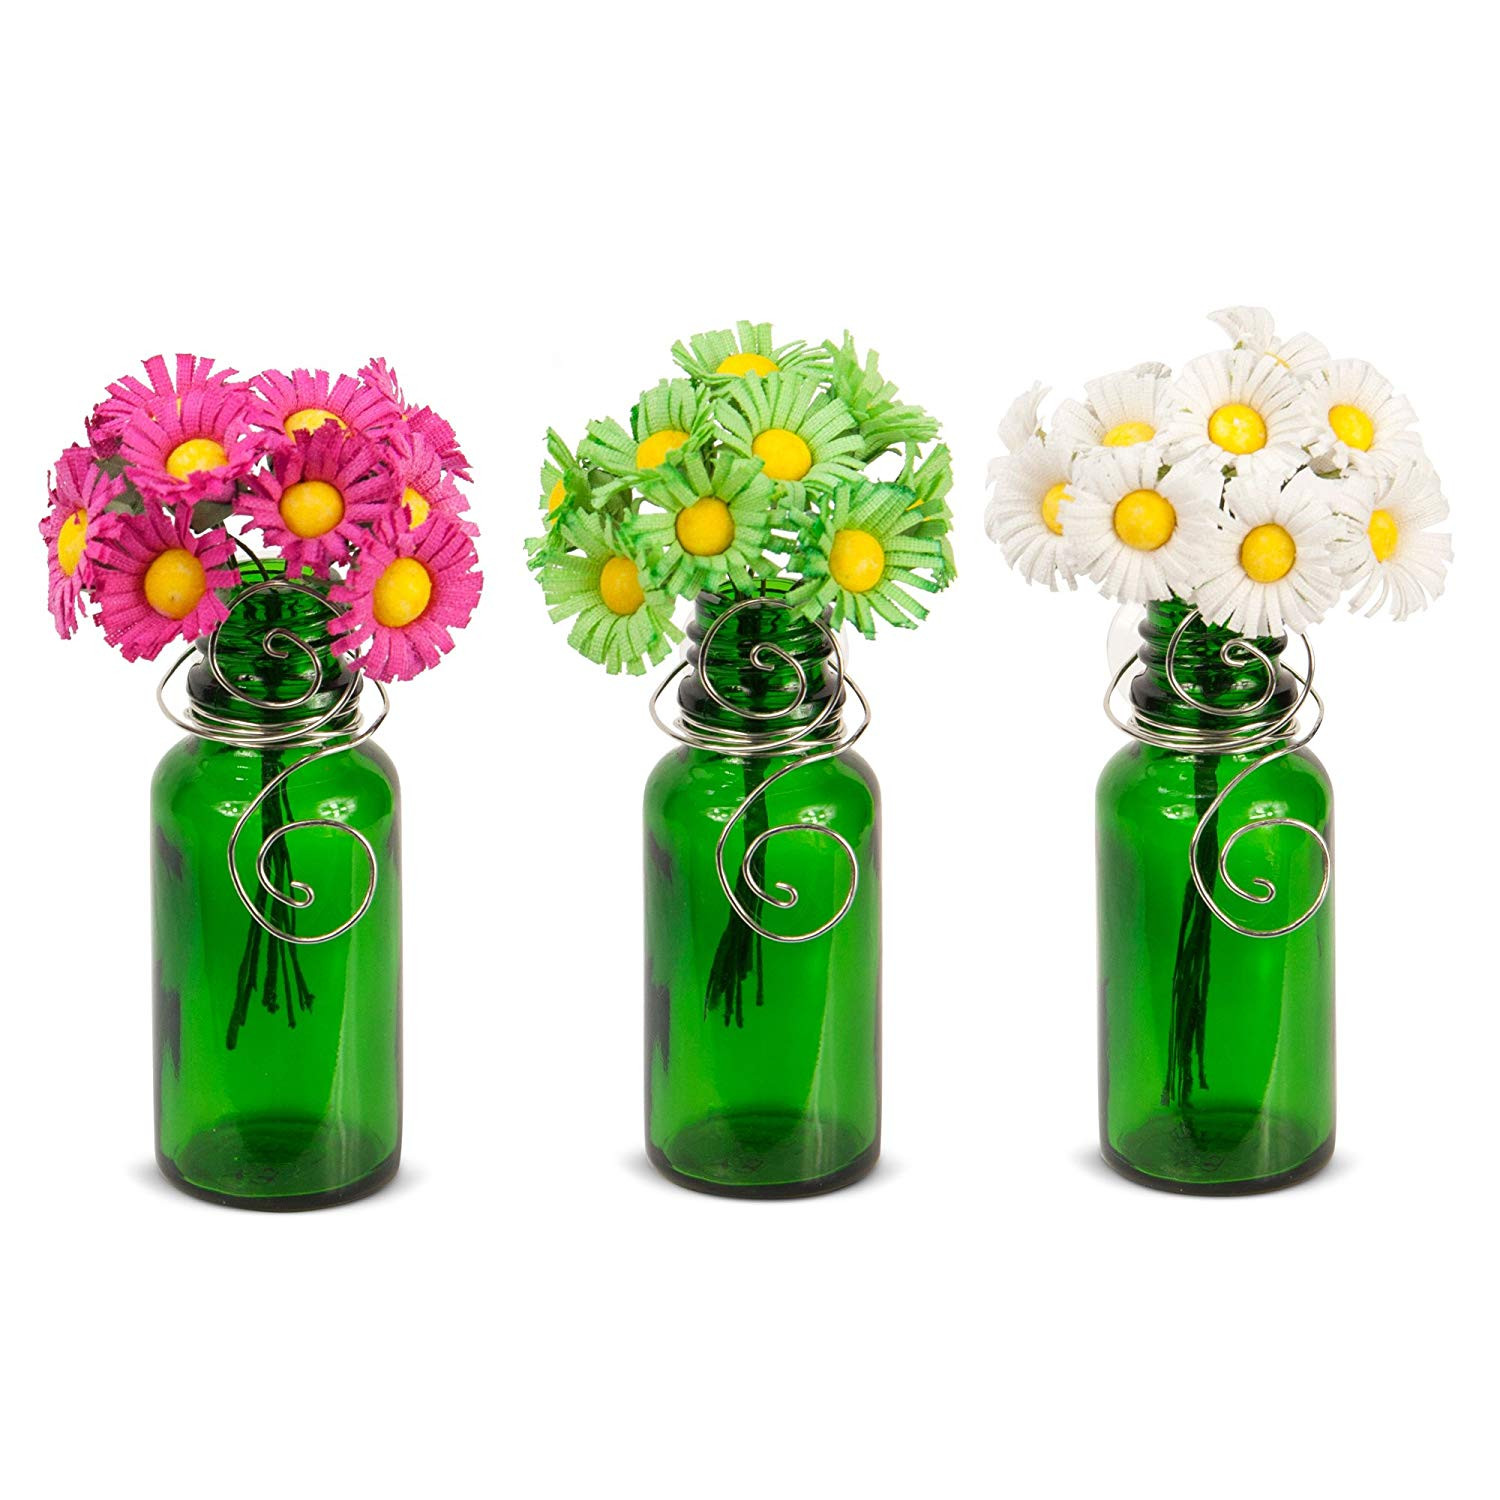 small glass bottle vases of amazon com vazzini mini vase bouquet suction cup bud bottle pertaining to amazon com vazzini mini vase bouquet suction cup bud bottle holder with flowers decorative for window mirrors tile wedding party favor get well